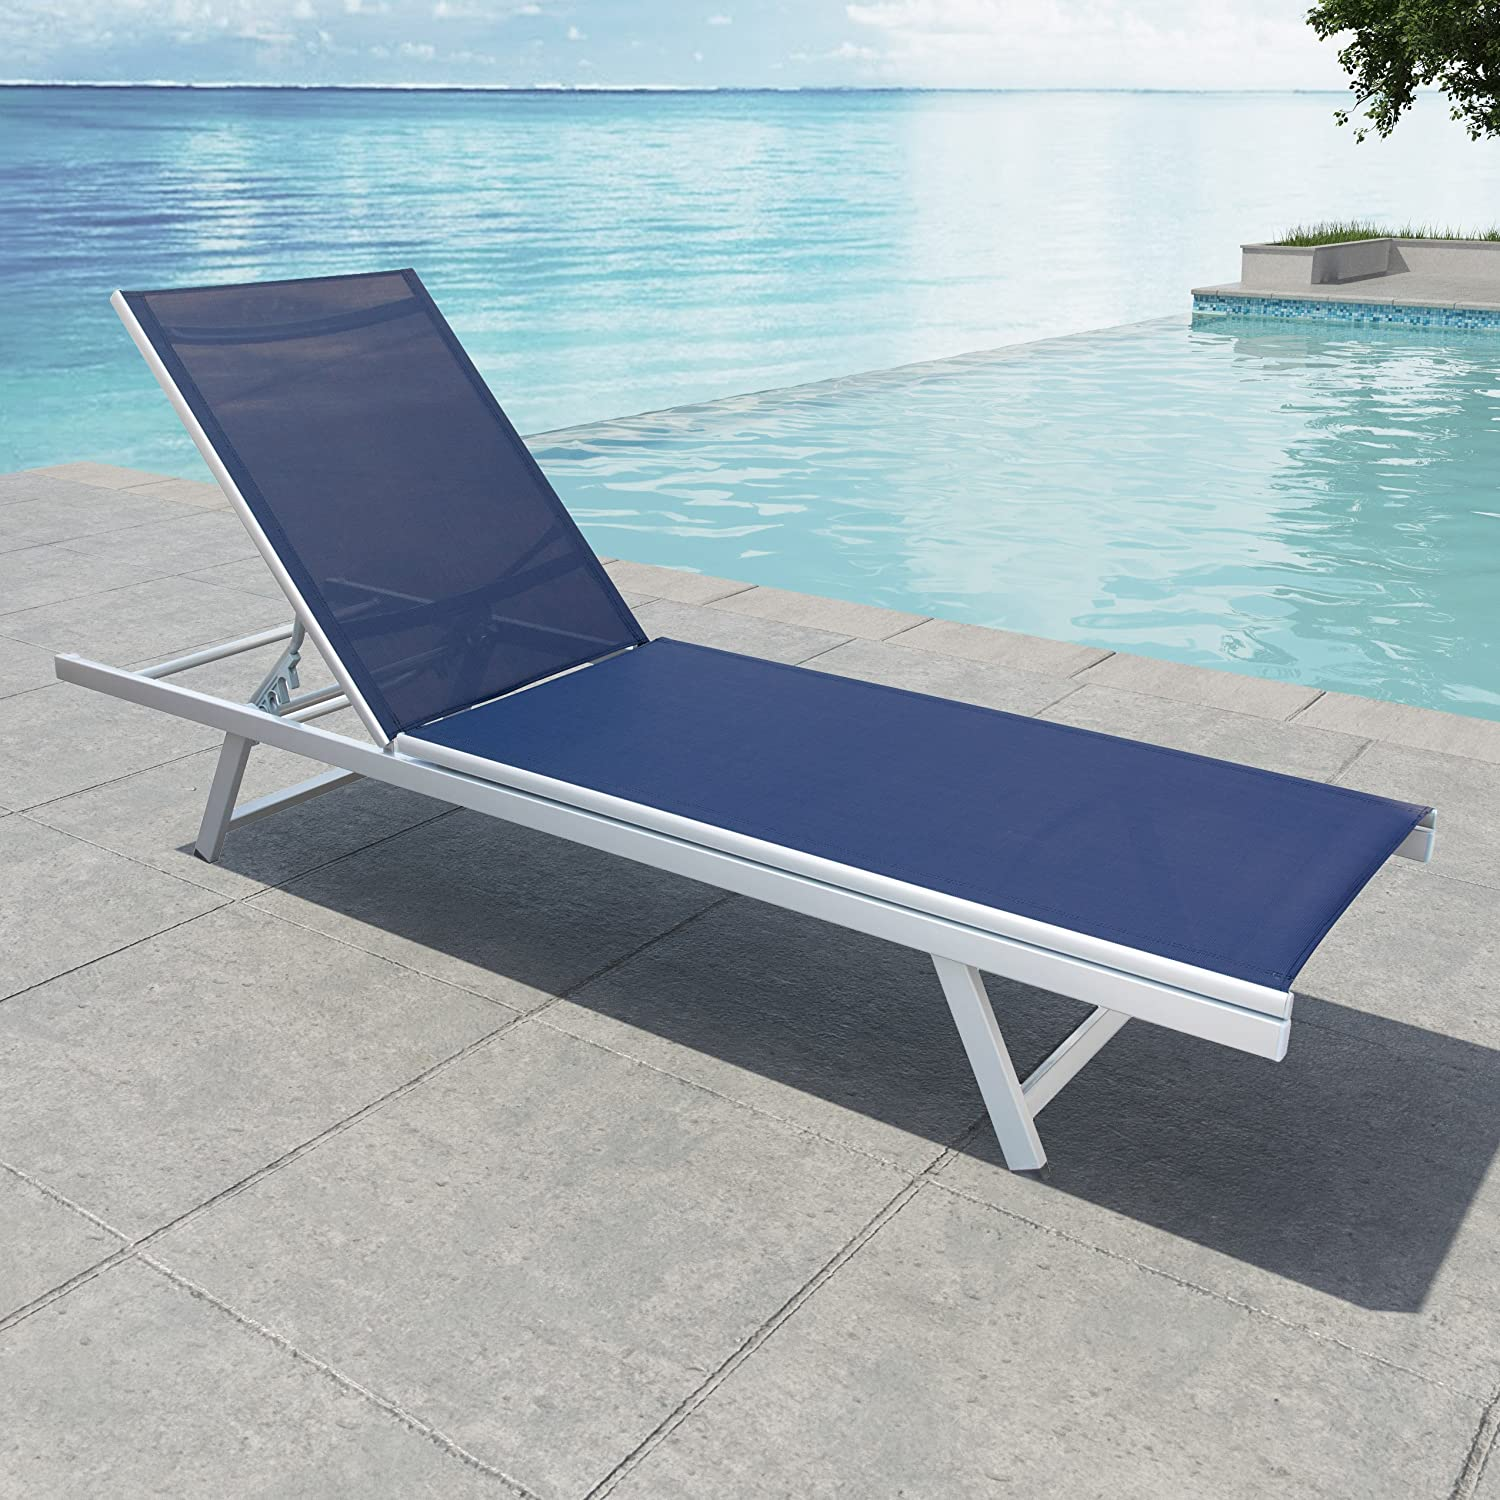 CorLiving PJR-309-R Gallant Reclining Patio Lounger Black//Silver